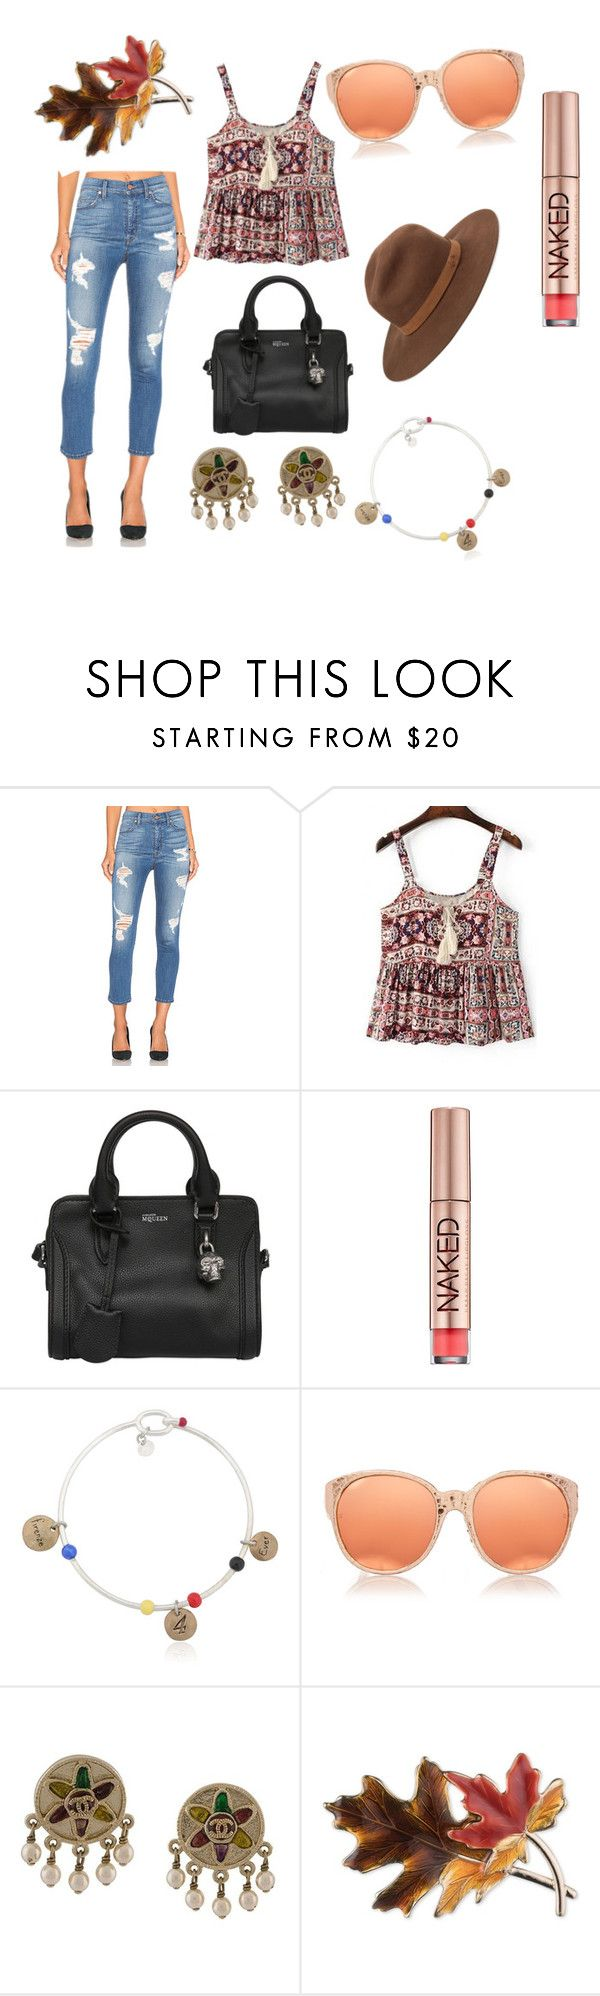 """Untitled #80"" by wedyan-al-zobady ❤ liked on Polyvore featuring Level 99, WithChic, Alexander McQueen, Urban Decay, Stefania Di Pardo, Linda Farrow, Chanel, Anne Klein and rag & bone"